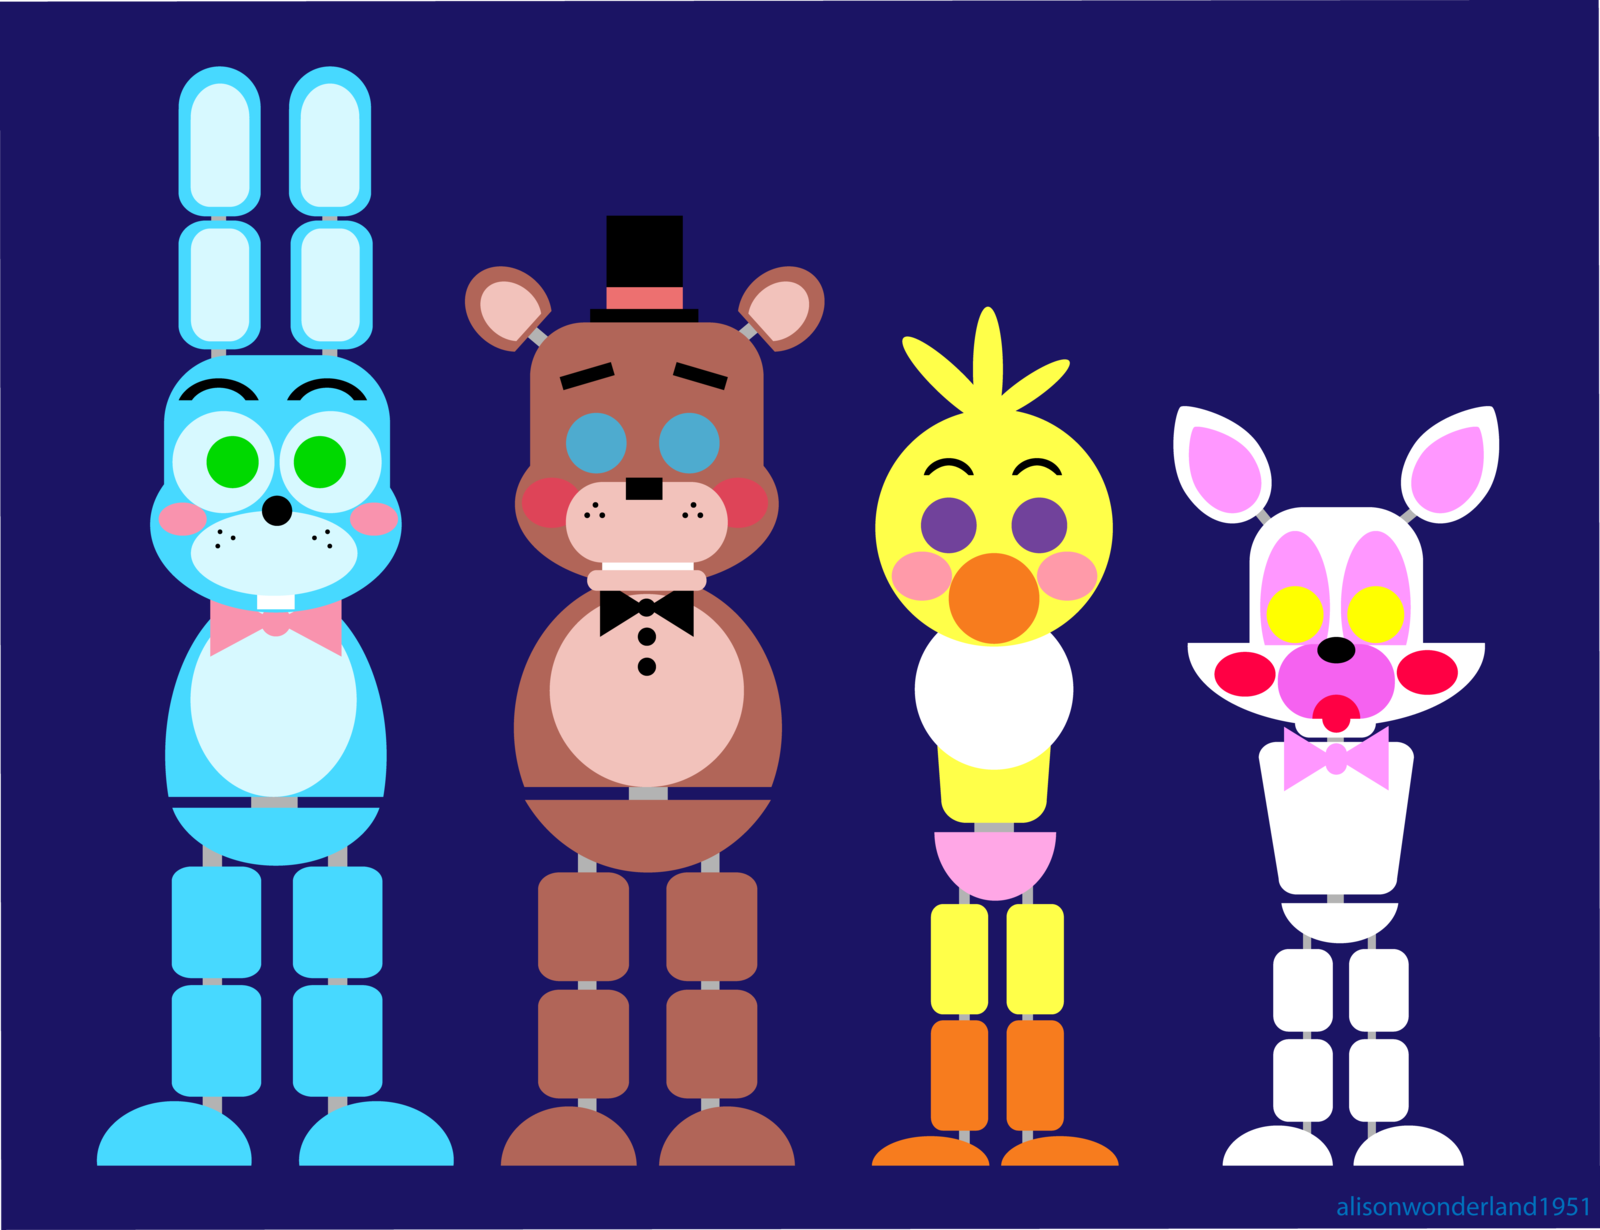 which toy animatronic are you?